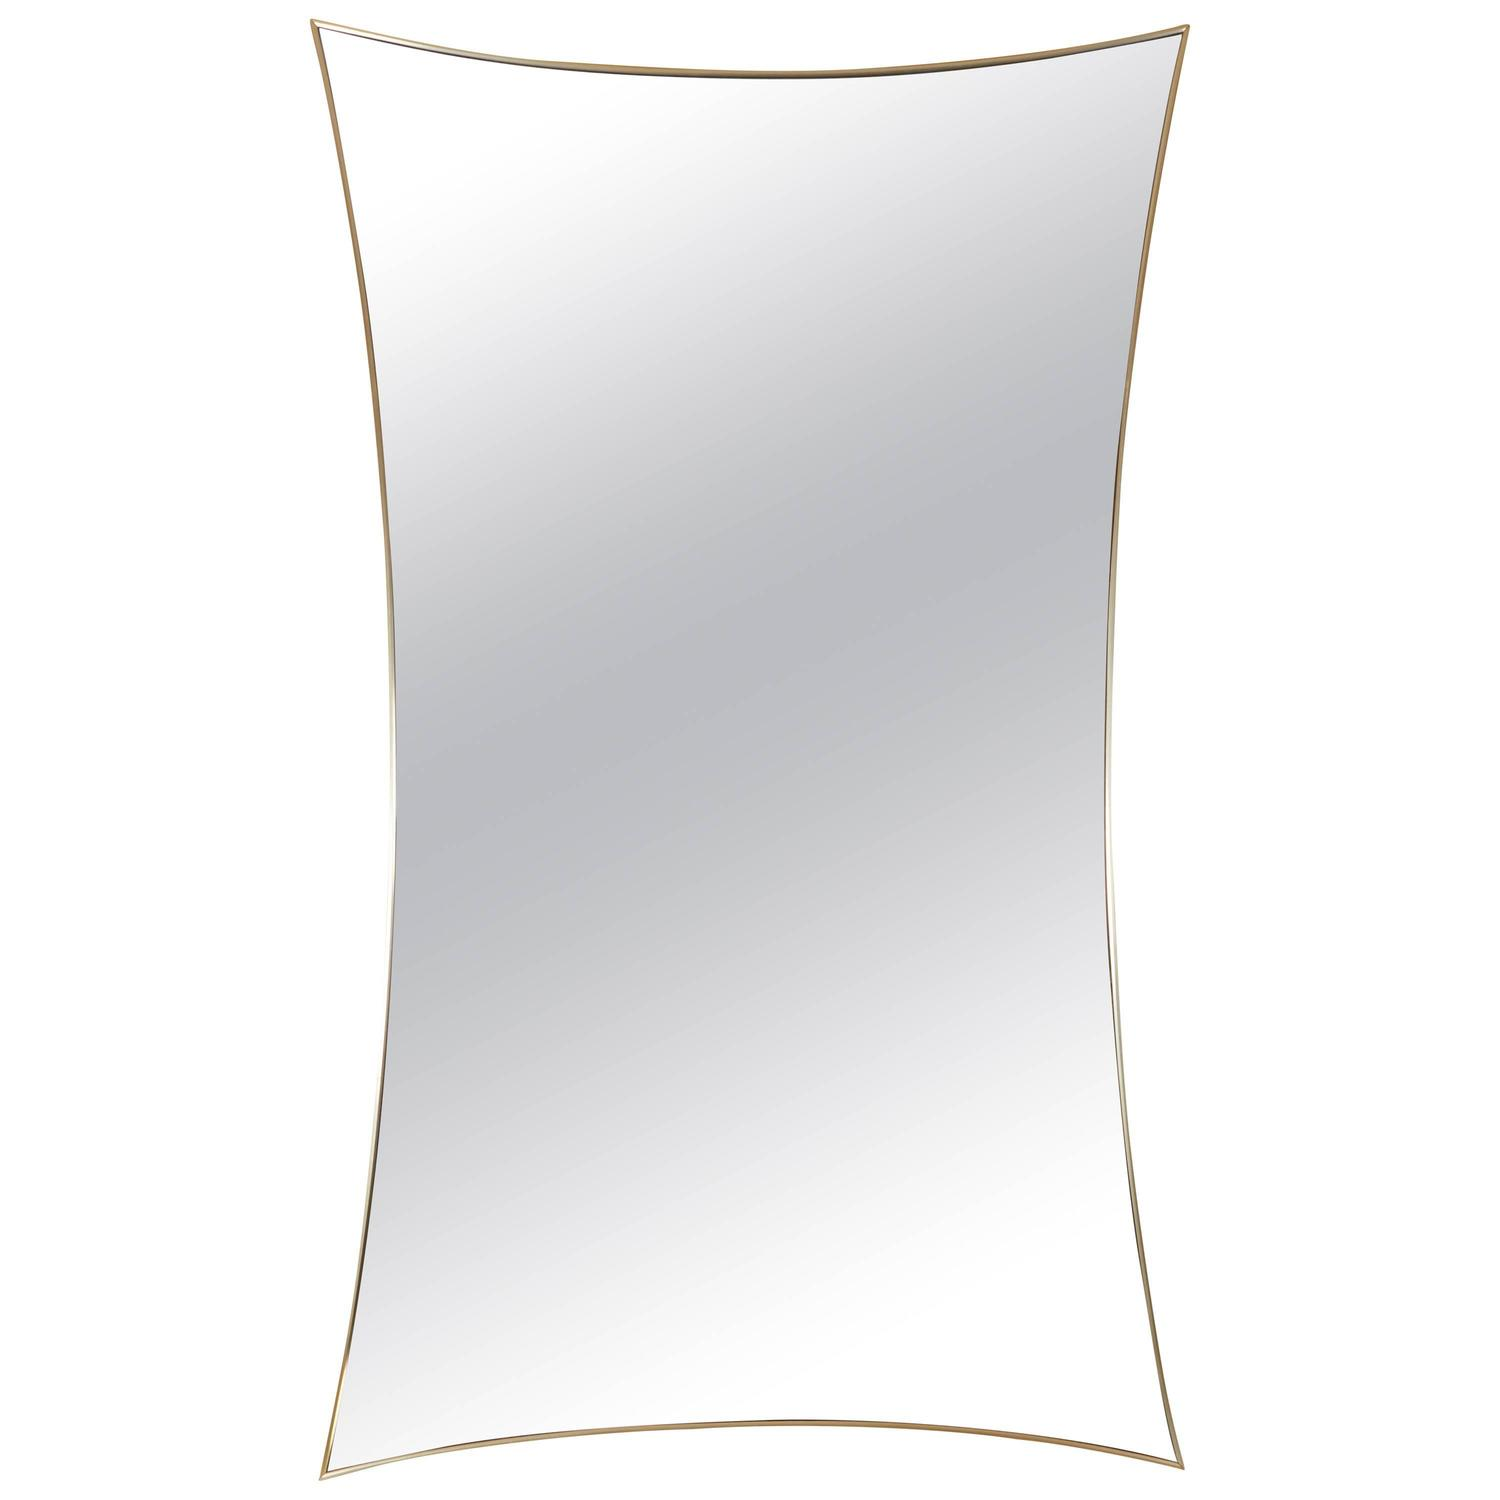 Graceful brass thin edge mirror by la barge at 1stdibs for Thin wall mirror